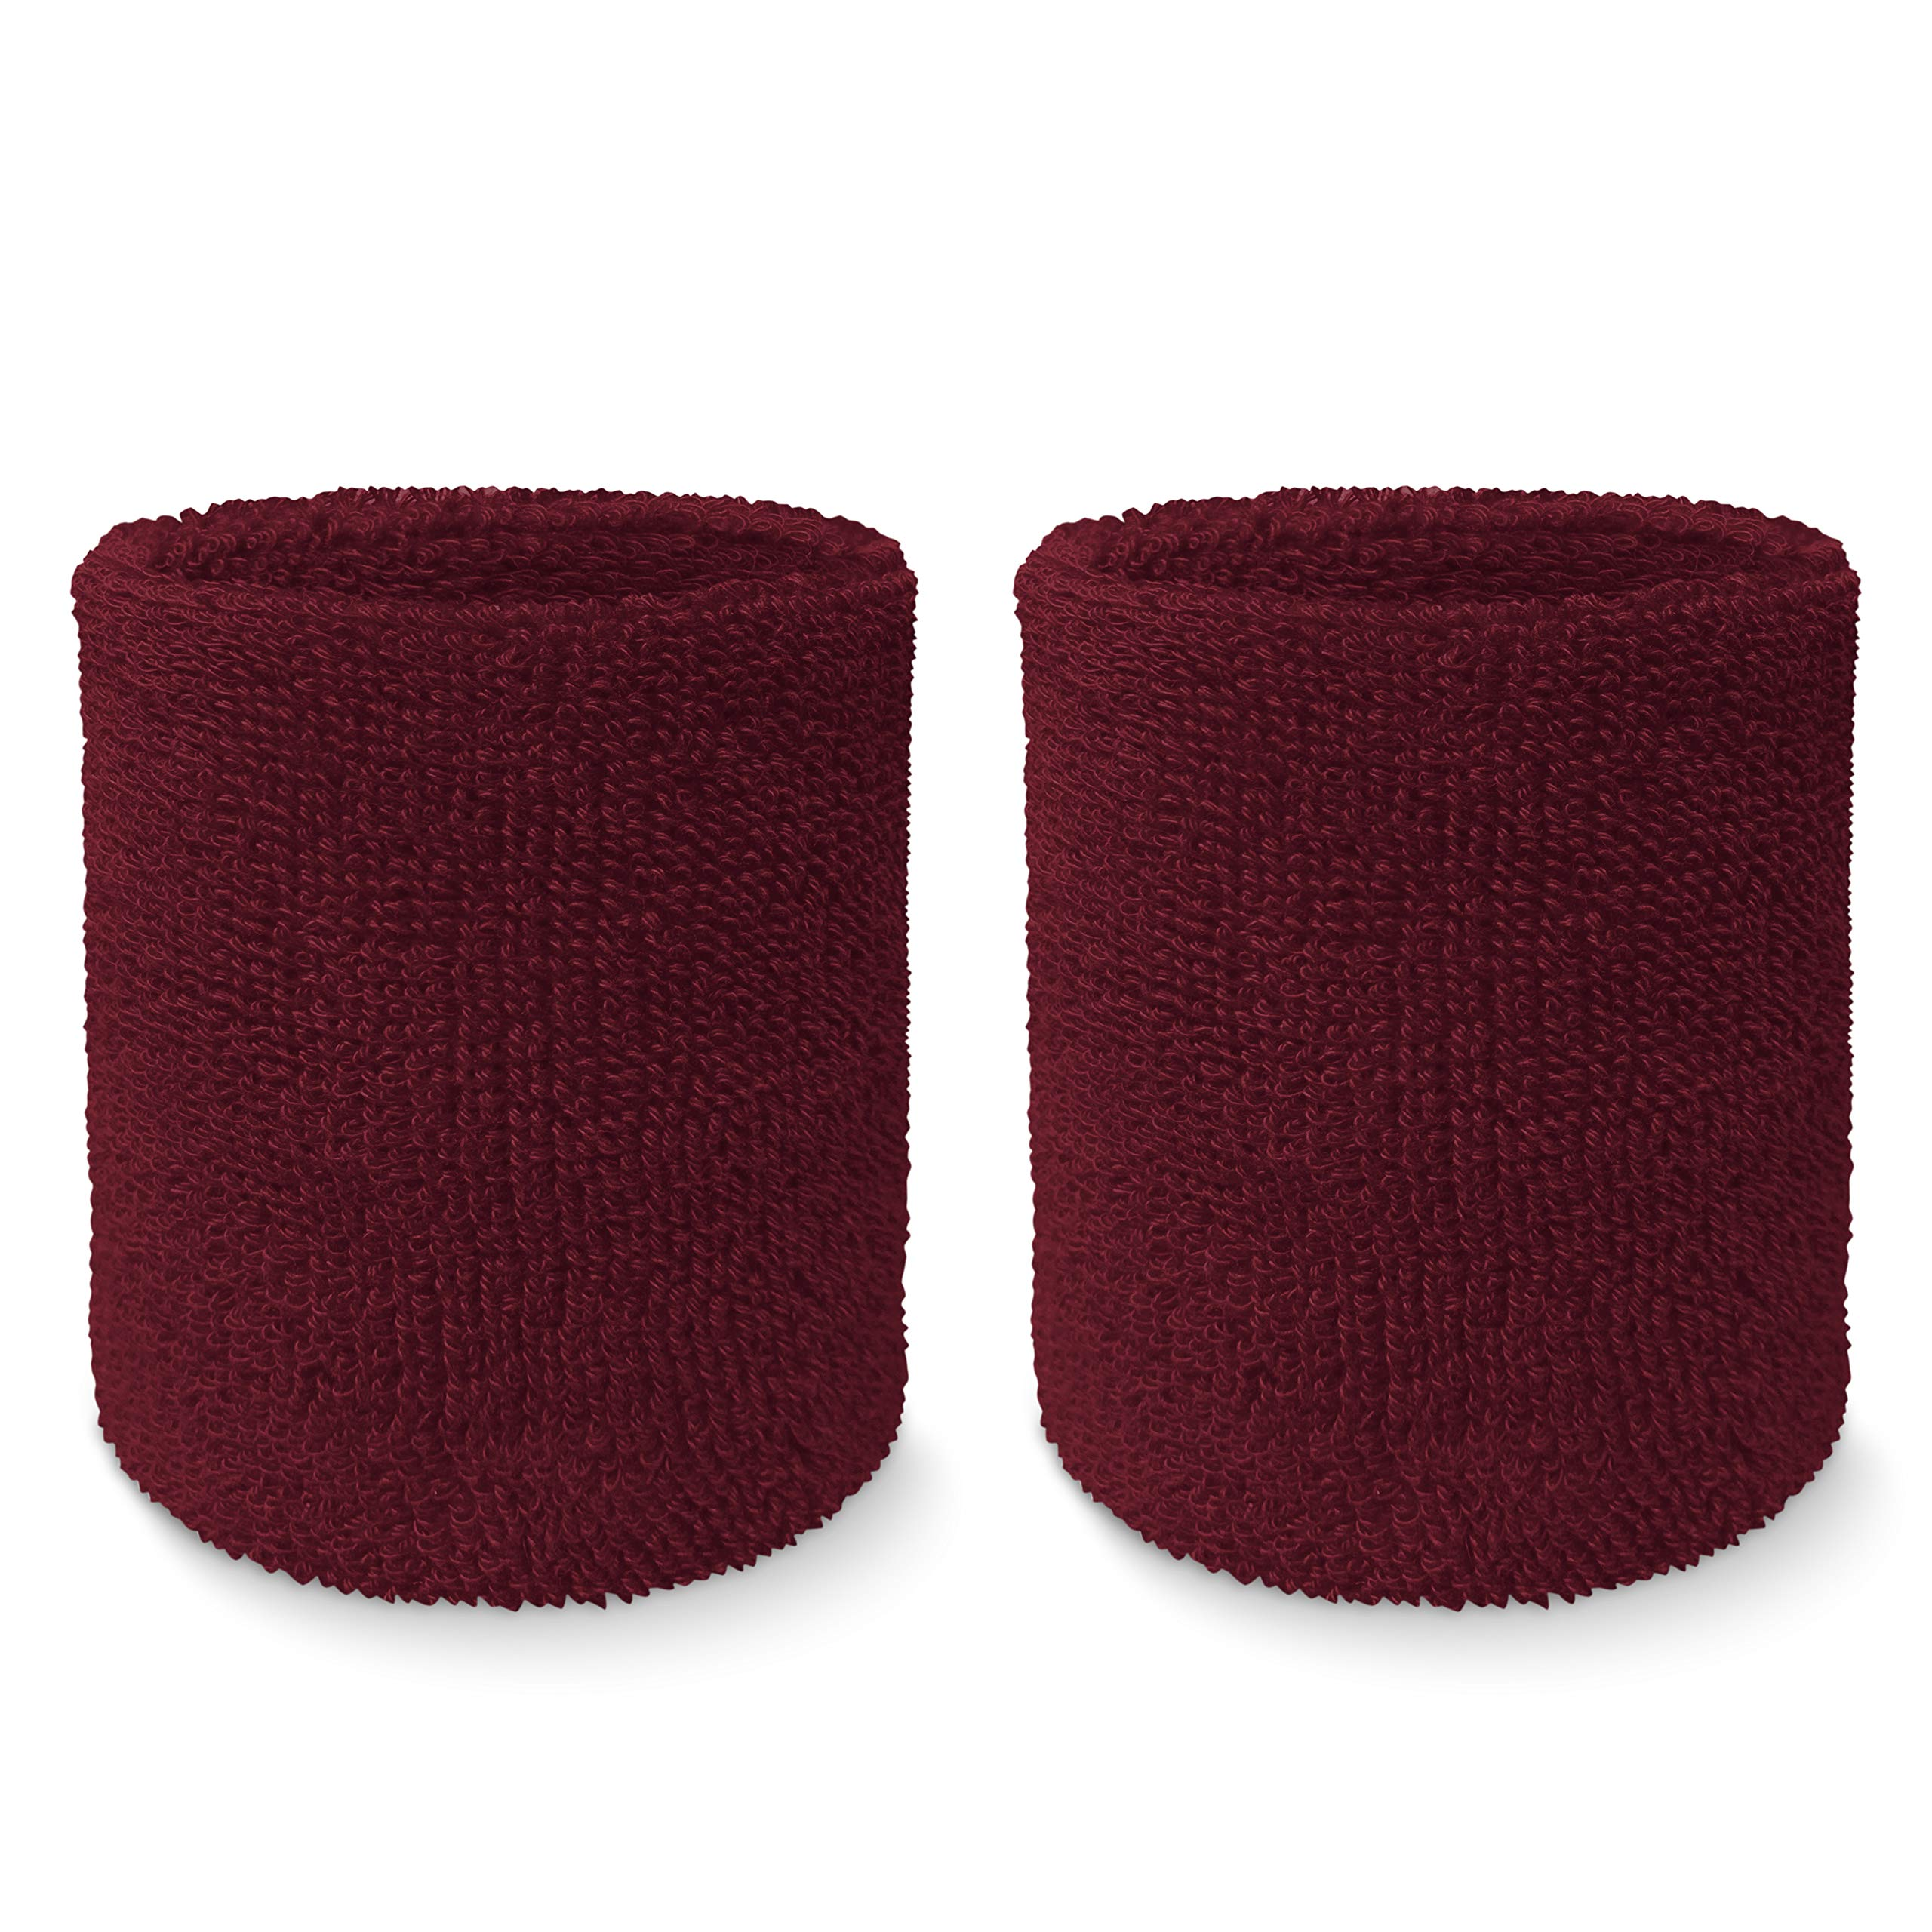 """COUVER Premium Quality 4"""" Tall Wrist Sweatband - Plain Solid Color Soft Cotton Terry Cloth Sport Wristband (1Pair)"""